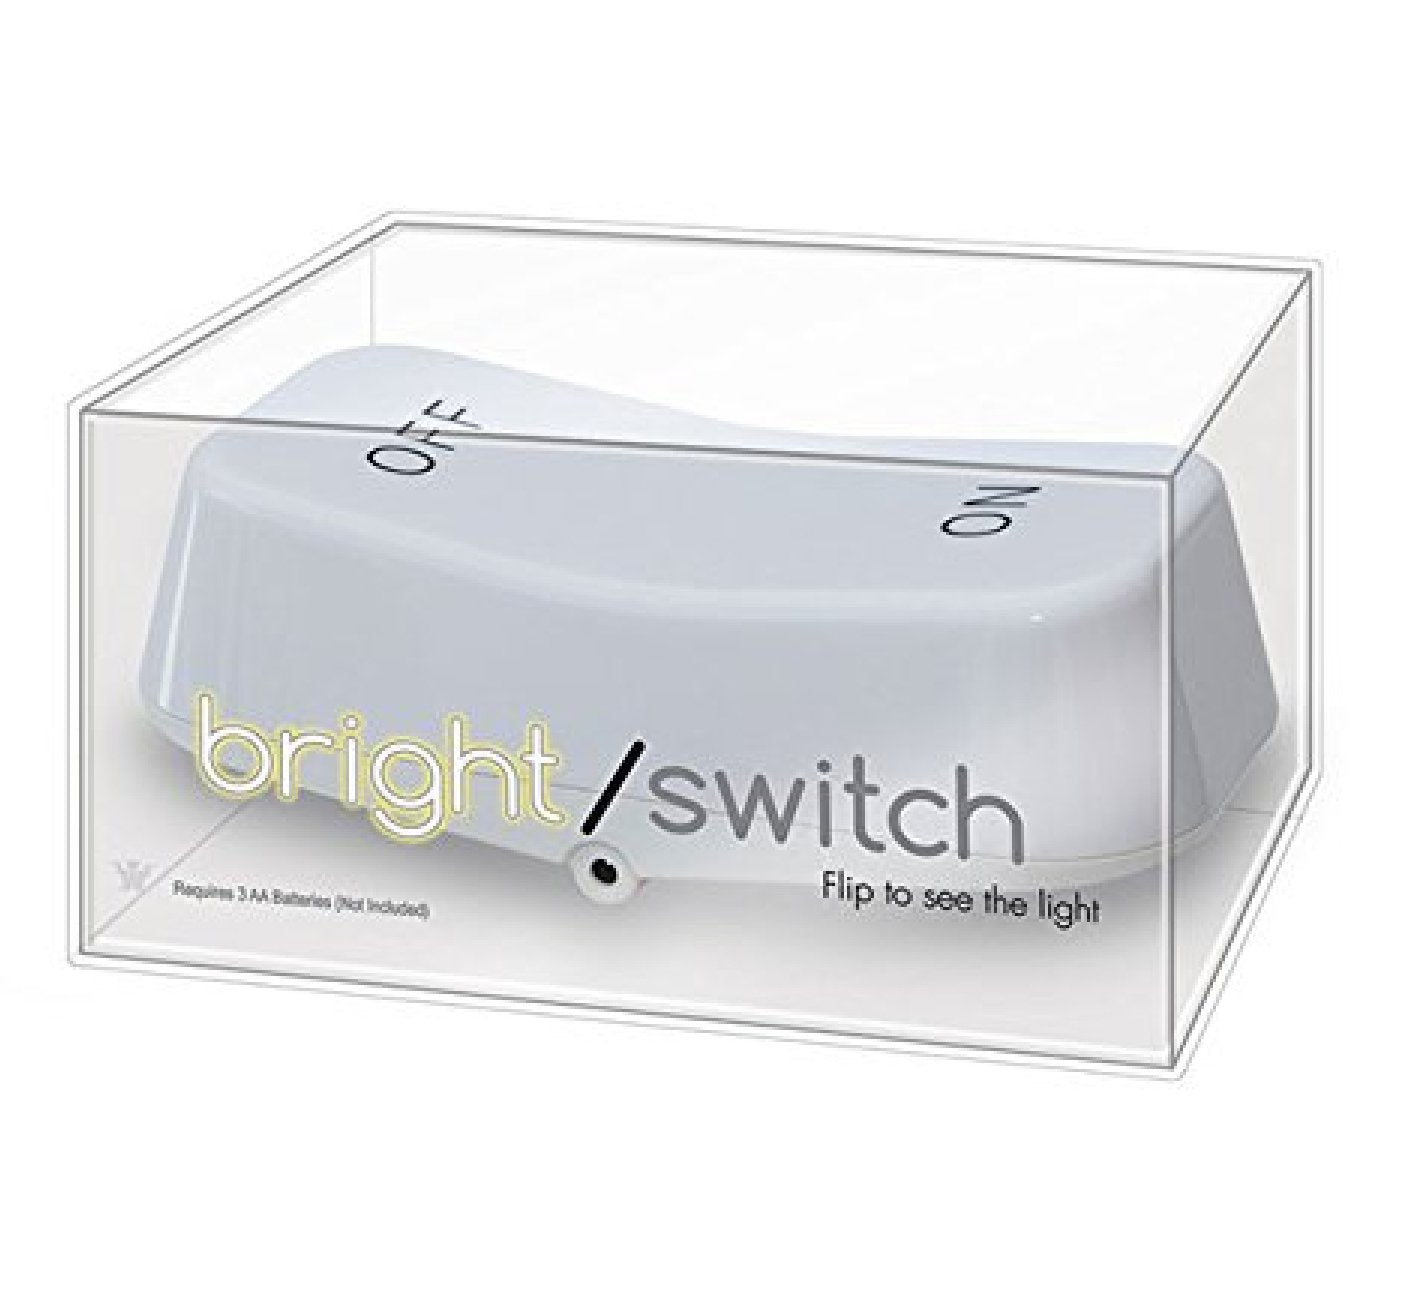 Bright Switch - On/Off Switch Battery Powered Night Light by Westminster